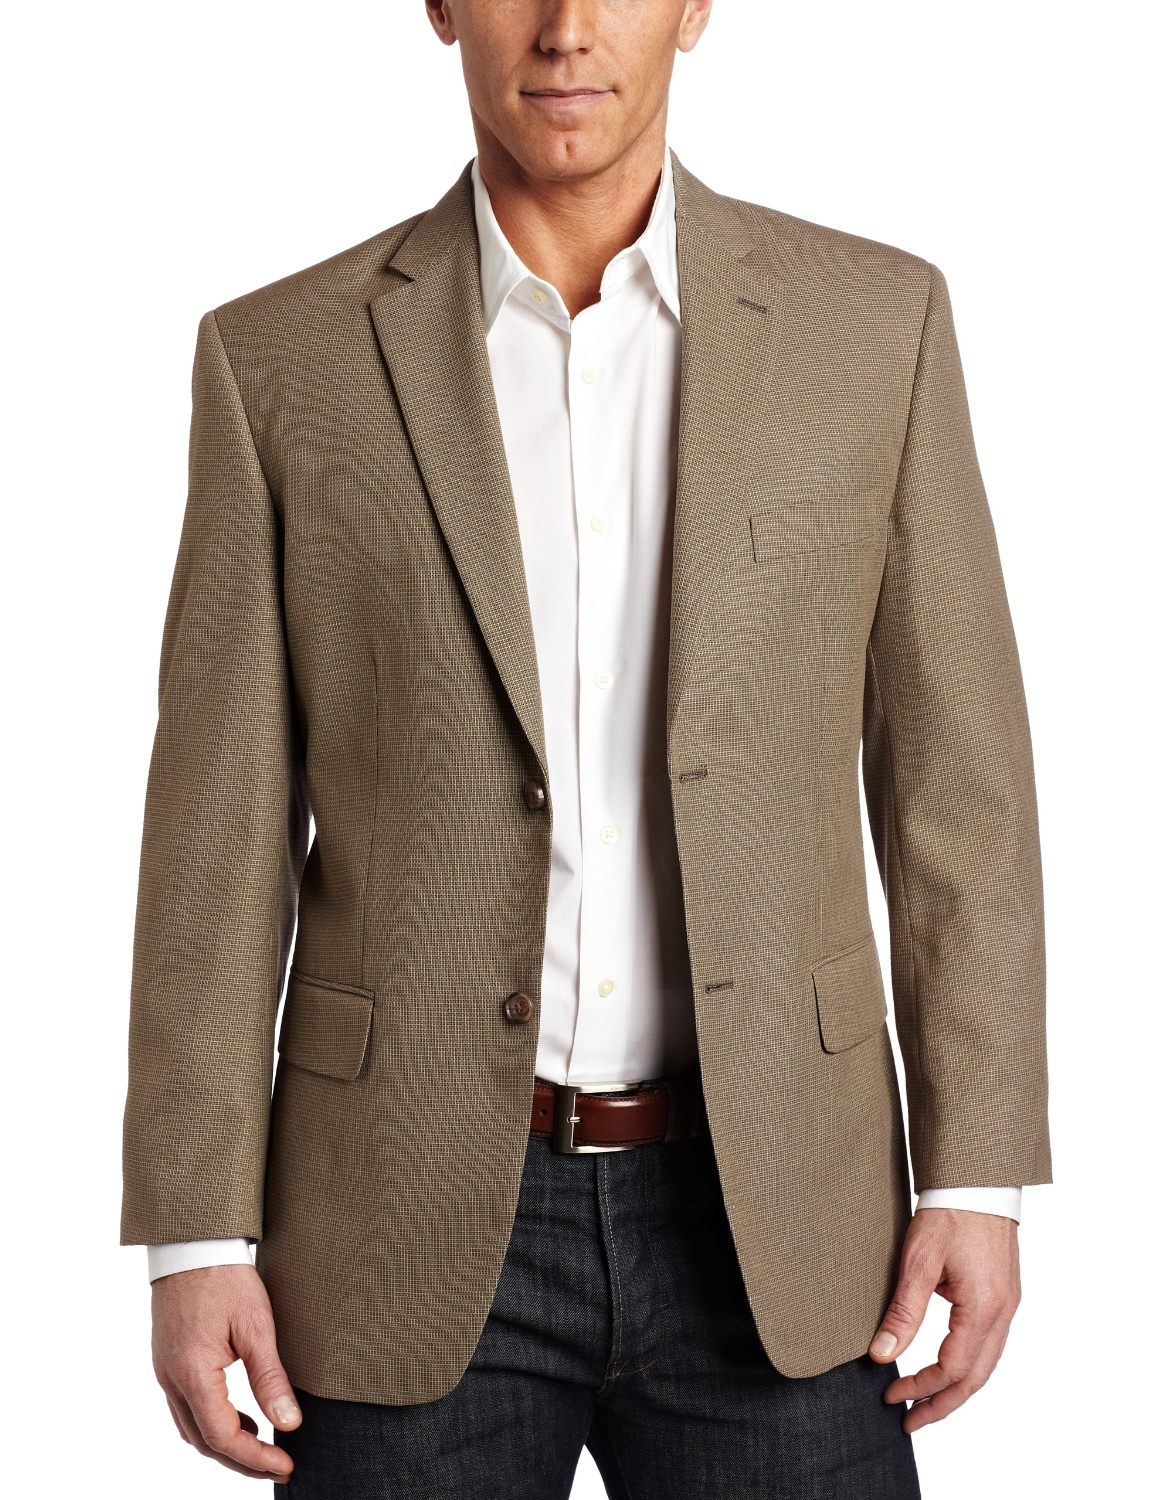 A Sports Jacket | Jackets Review